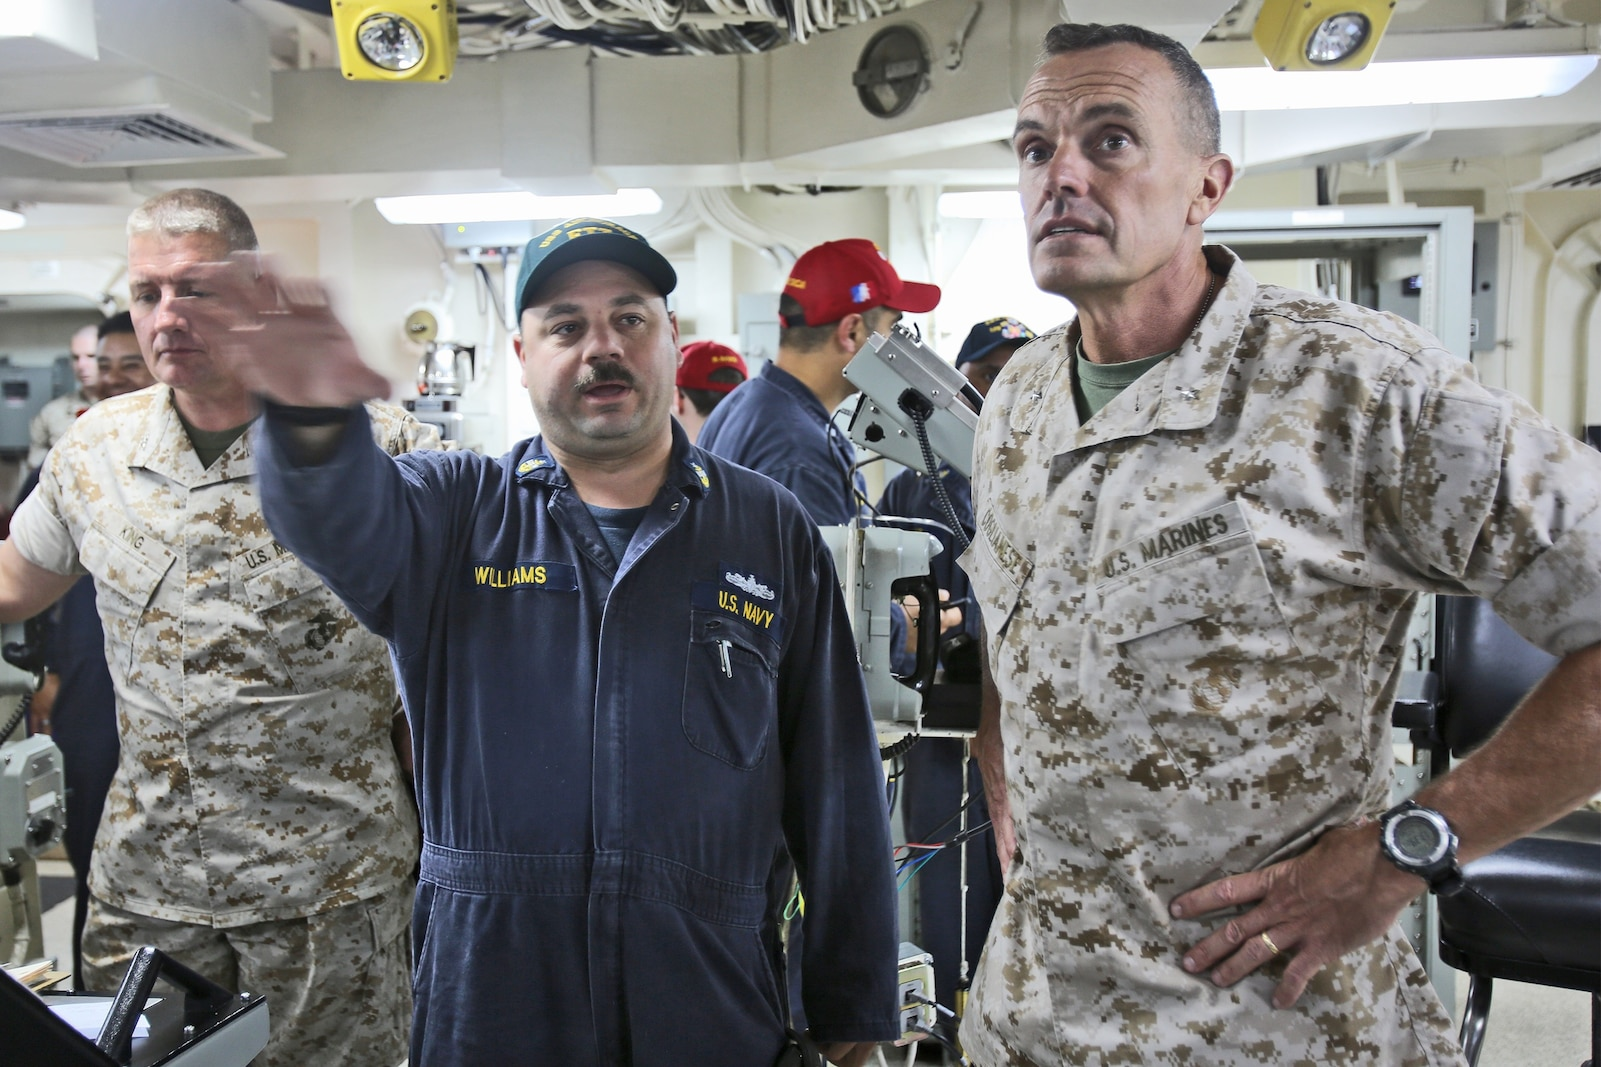 Brigadier Gen. Vincent A. Coglianese, right, commanding general, 1st Marine Logistics Group, speaks to Senior Chief Electrician's Mate Glenn Williams, aboard amphibious transport dock ship USS Anchorage (LPD 23), regarding the ship's navigation systems, March 20, 2014. The USS Anchorage, with embarked Marines from 1st Marine Expeditionary Force, was off the coast of California conducting amphibious warfare certification training. The embarked Marines will conduct aircraft landing operations, live-fire training, martial arts and other drills in order to maintain their position as an expeditionary force in readiness.